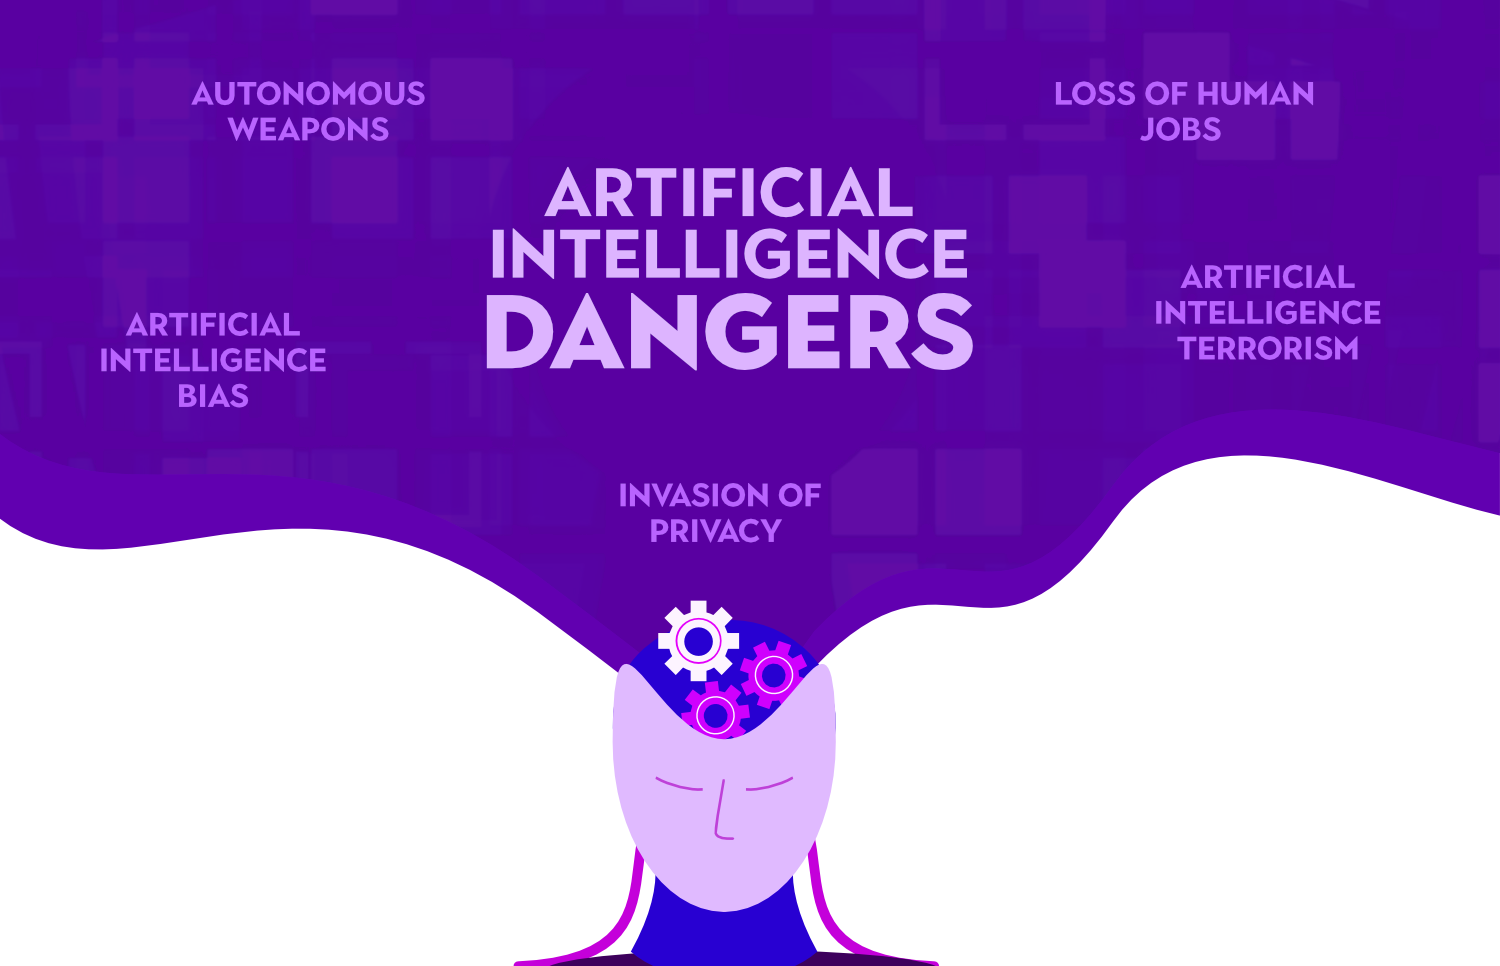 5-Dangers-of-Artificial-Intelligence-in-the-Future